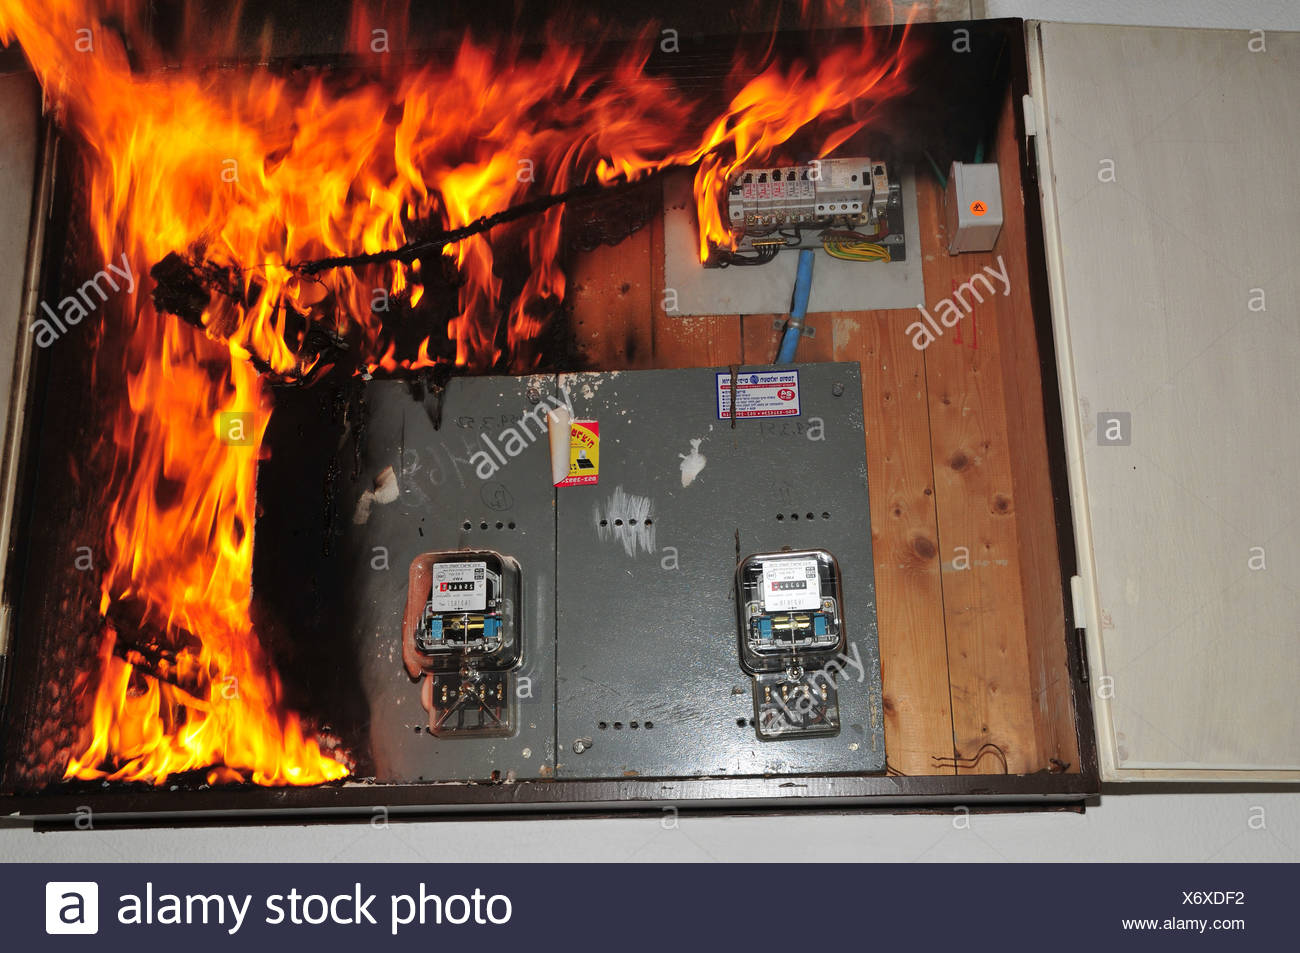 Fuse Box Explosion : For electrical household stock photos